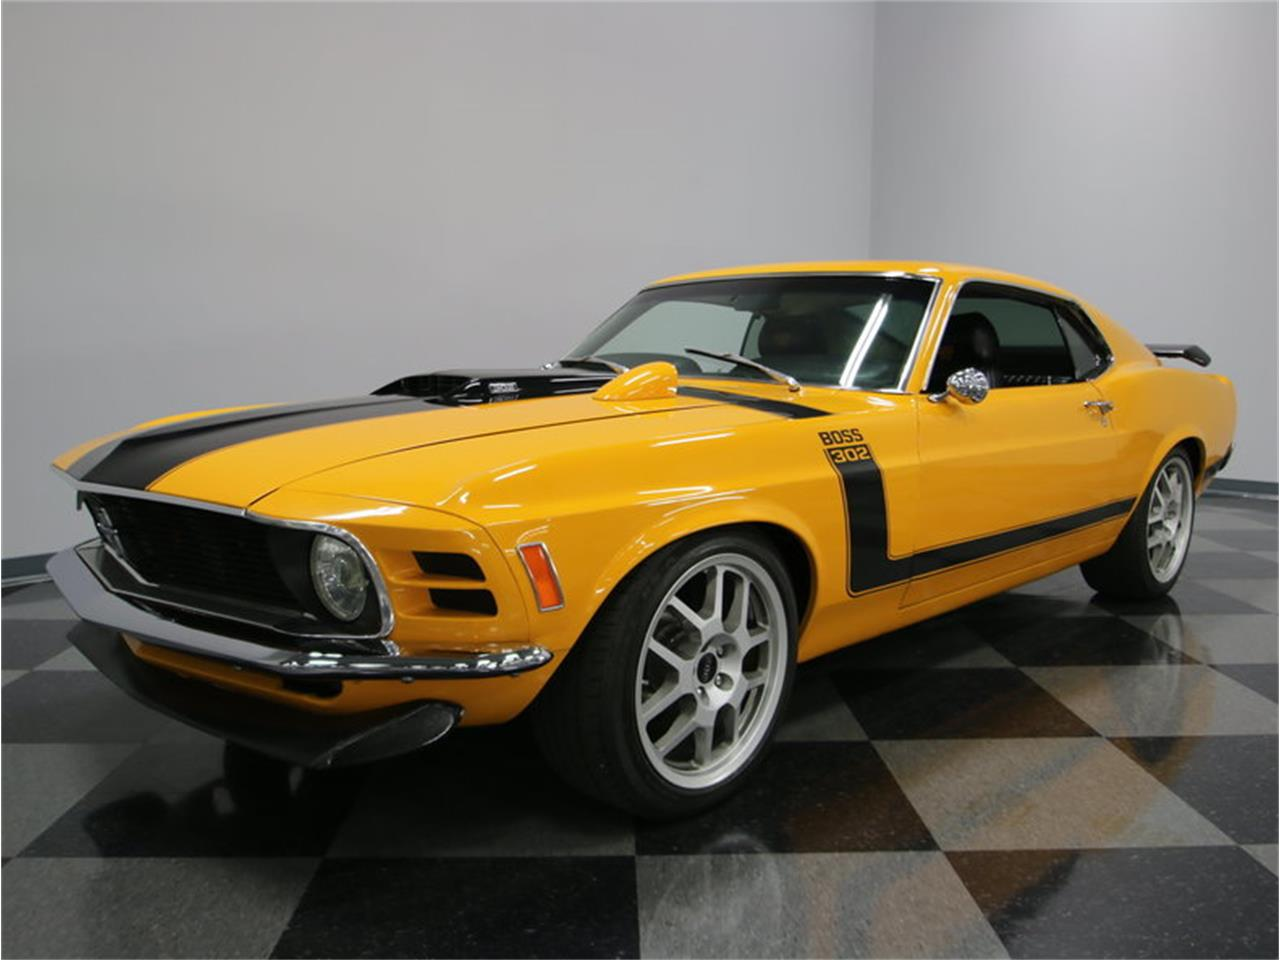 1970 boss 302 grabber orange for sale autos post. Black Bedroom Furniture Sets. Home Design Ideas